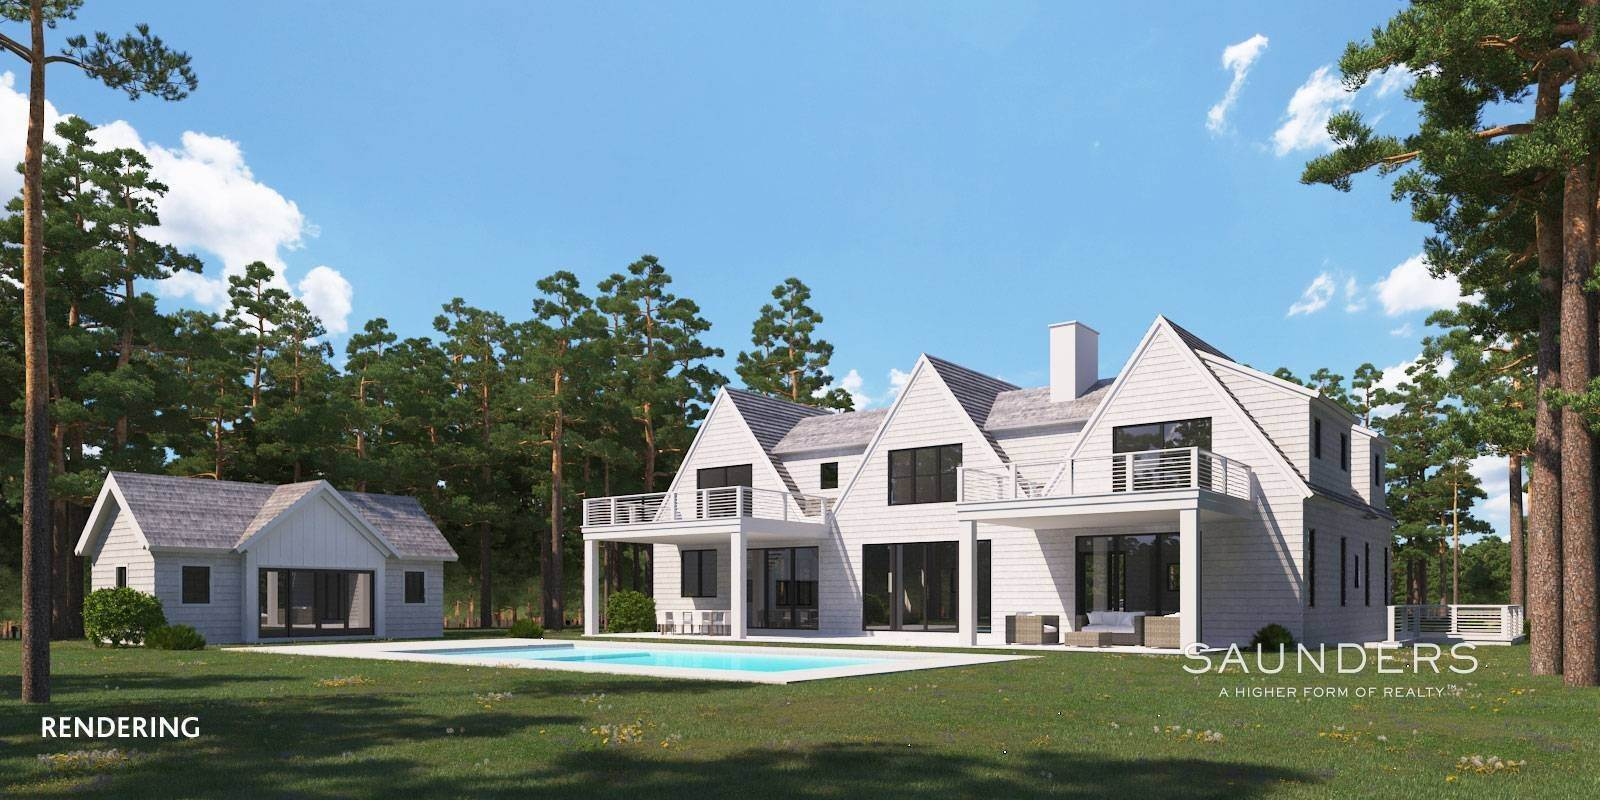 Single Family Homes for Sale at Sagaponack Opportunity Room For Pool, Spa And Cabana 482 Wainscott Harbor Road, Sagaponack, Southampton Town, NY 11962